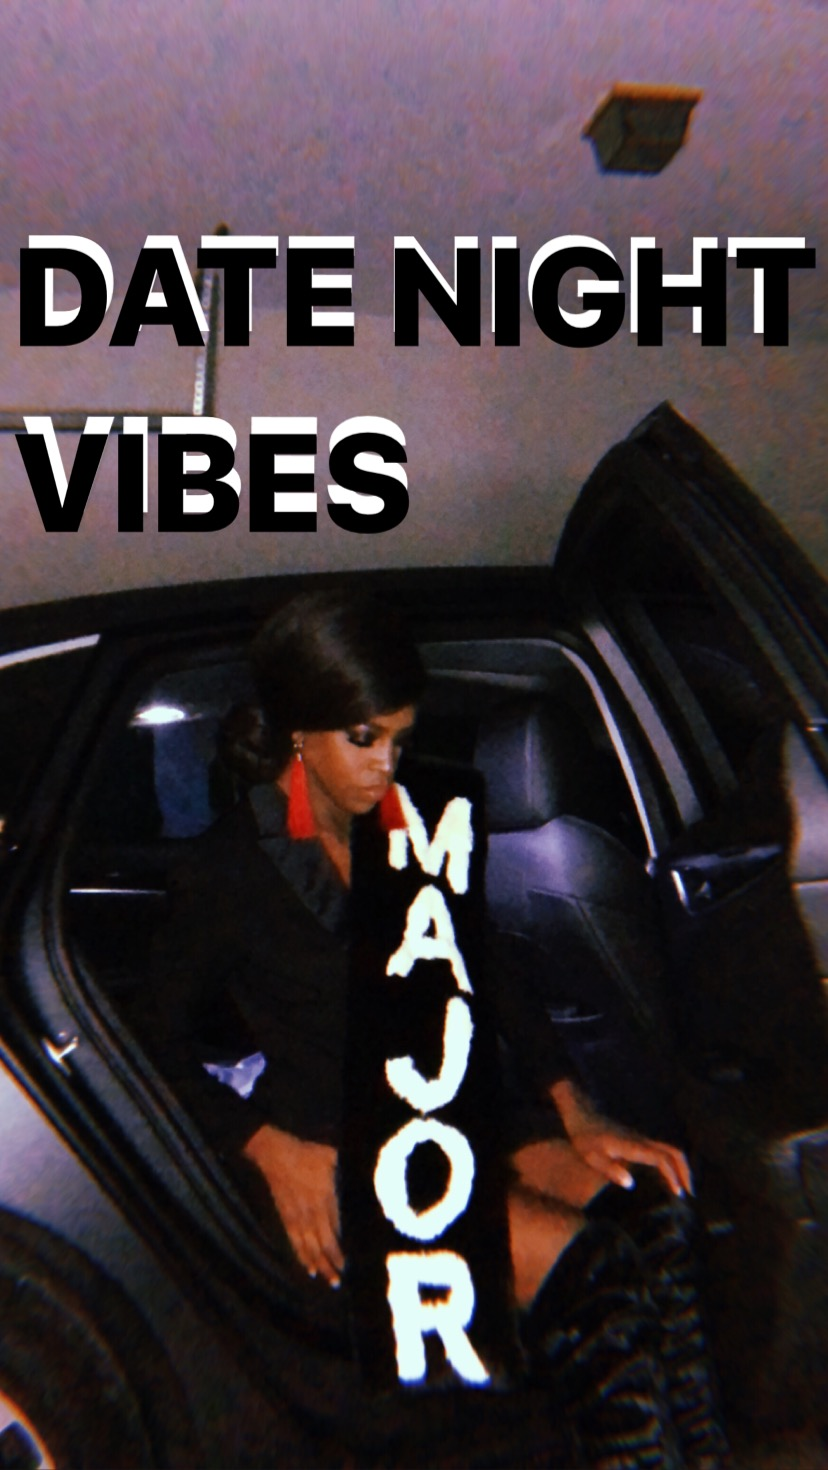 Vibes: Datenight